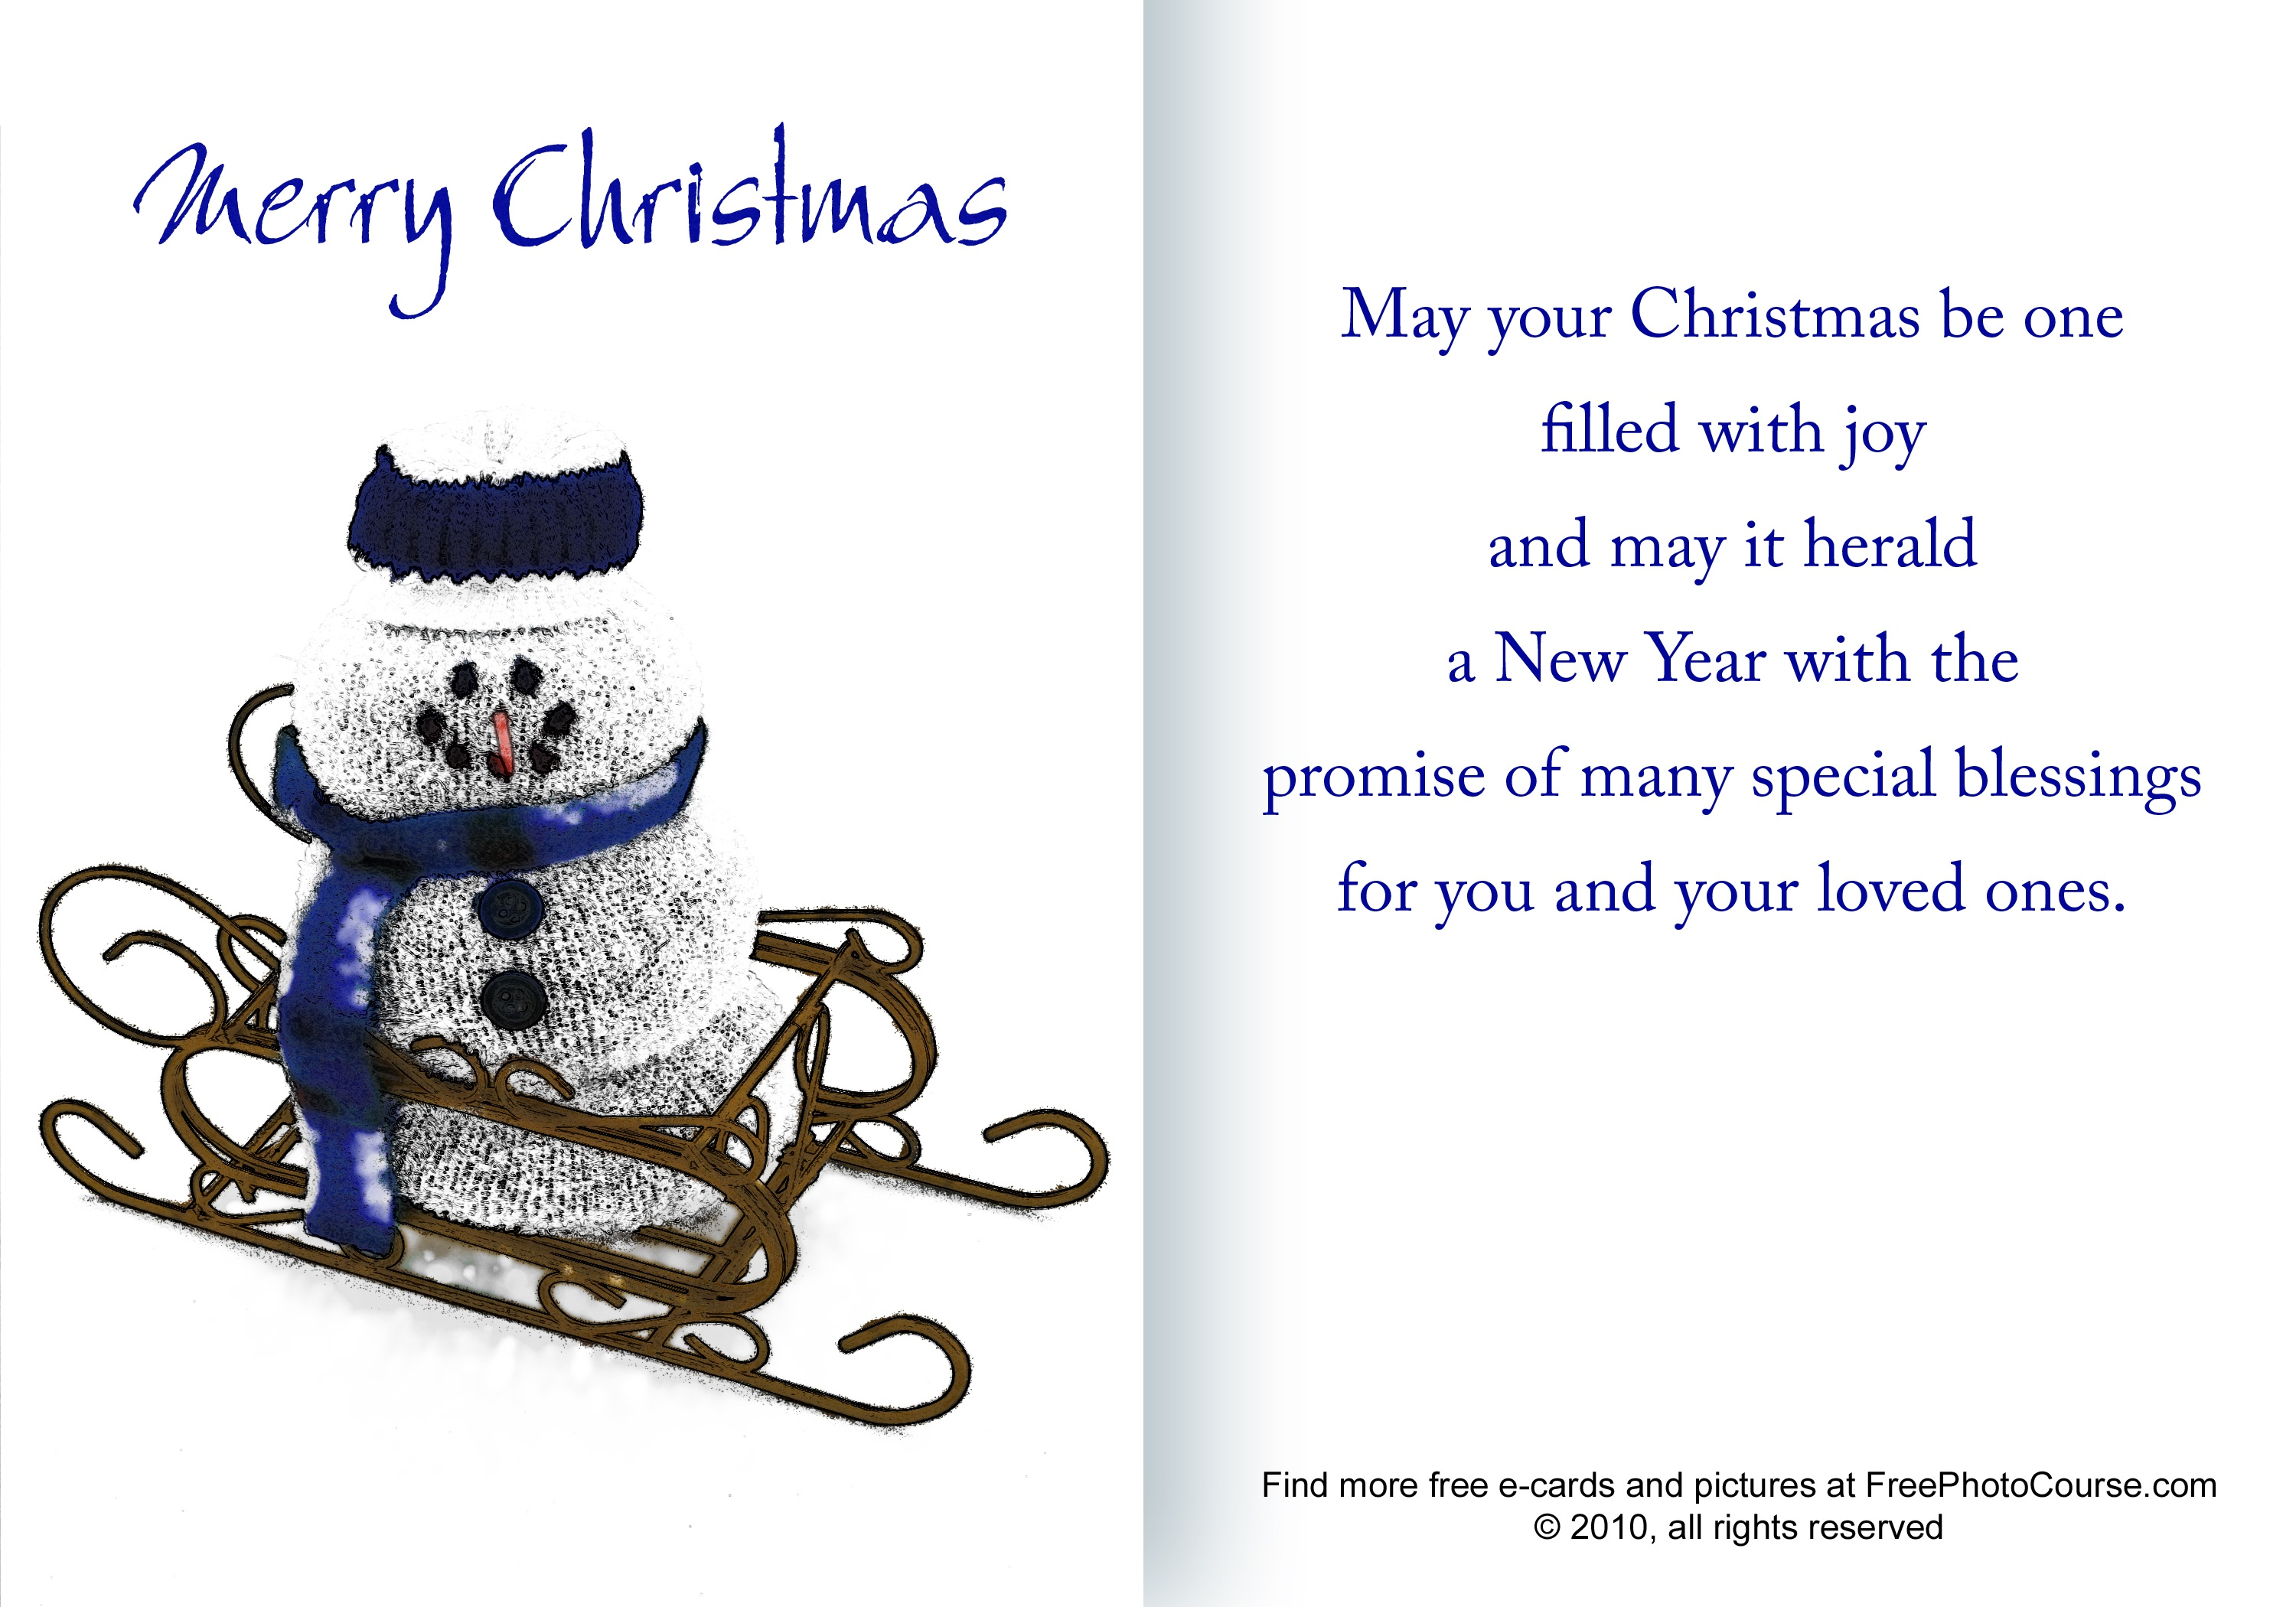 Free Christmas And Holiday Cards And Pictures - Free Online Printable Christmas Cards